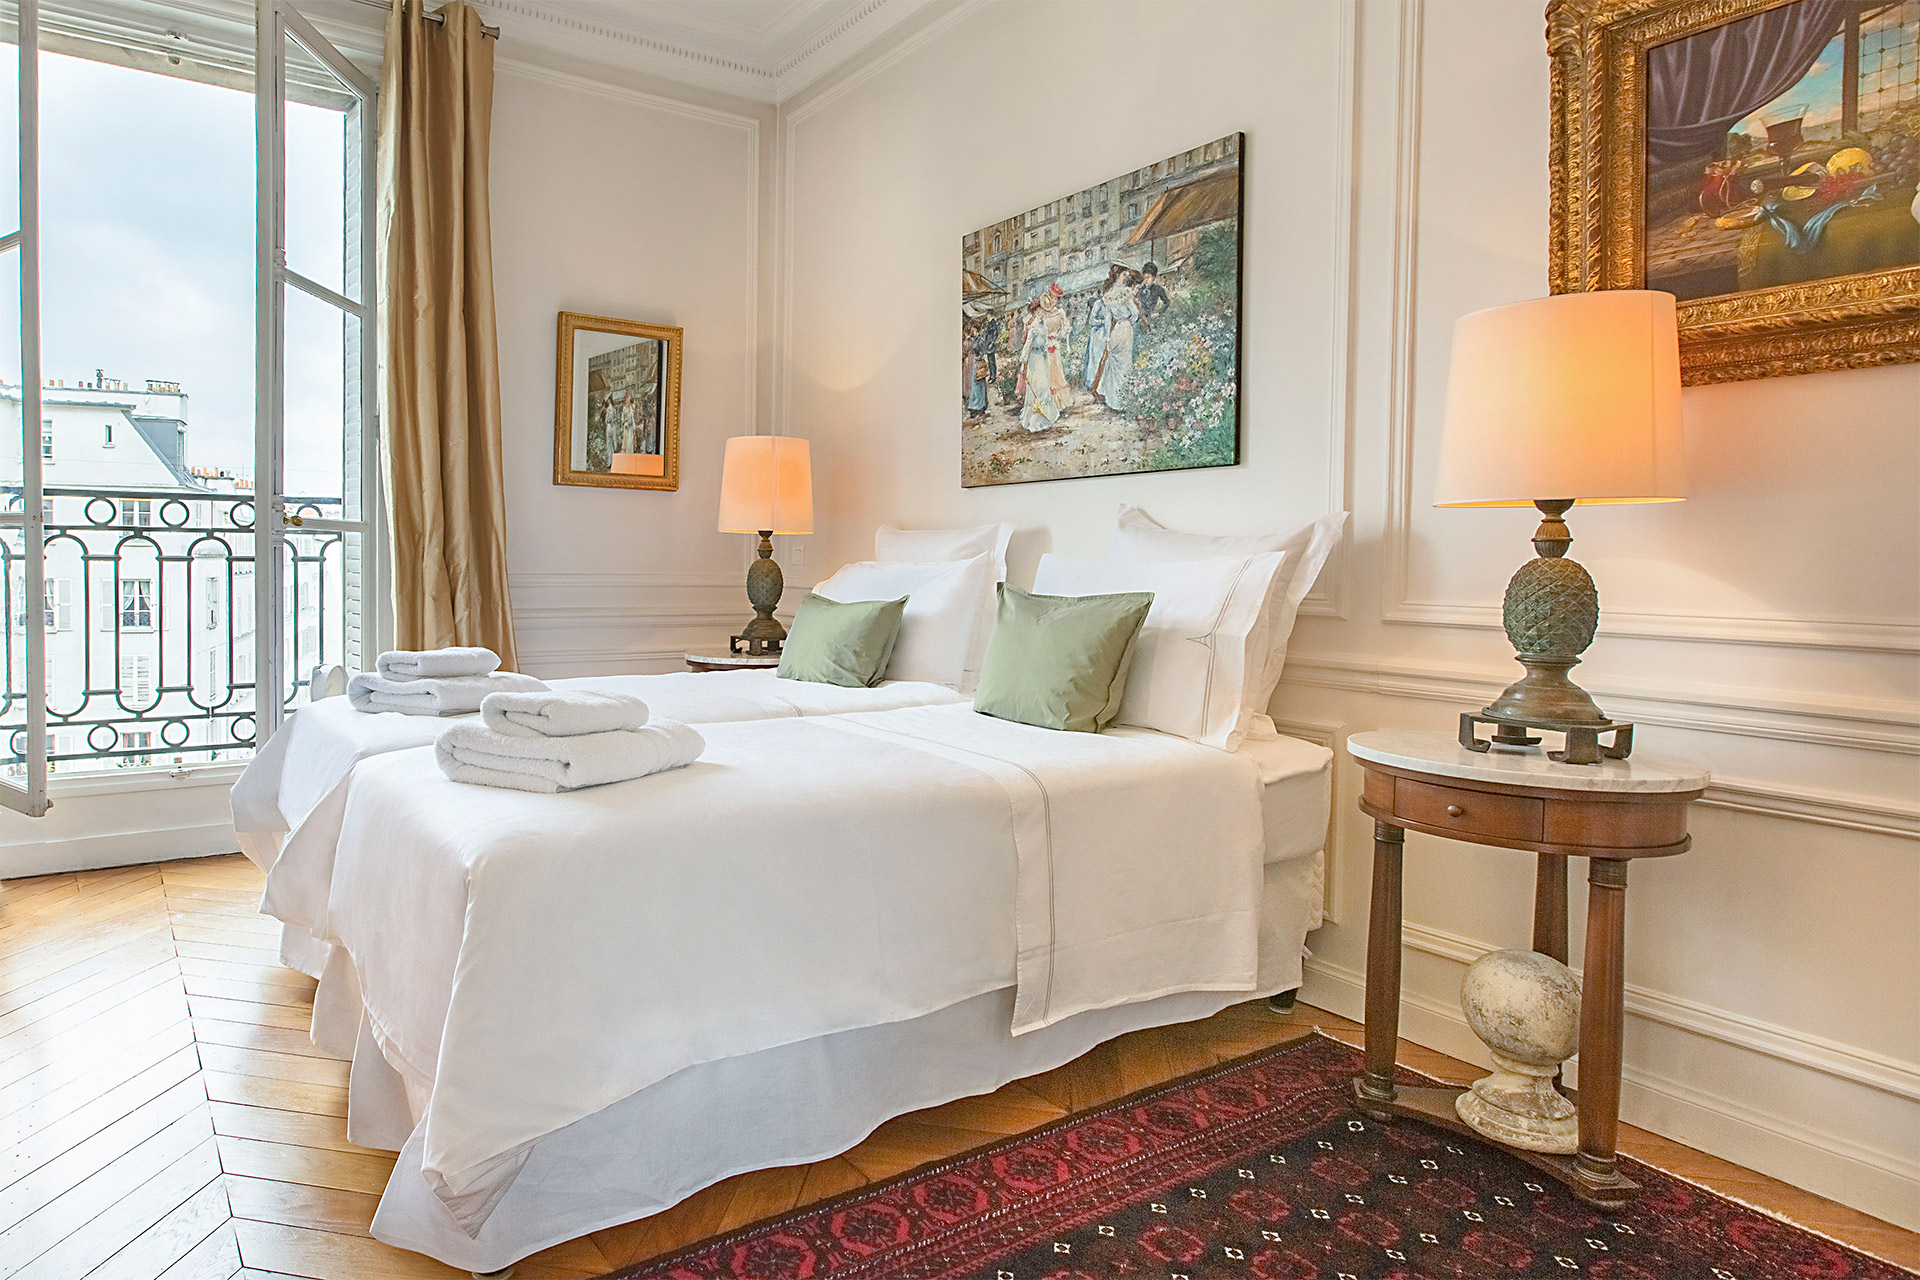 Beautiful decor in the second bedroom of the Chateauneuf vacation rental offered by Paris Perfect